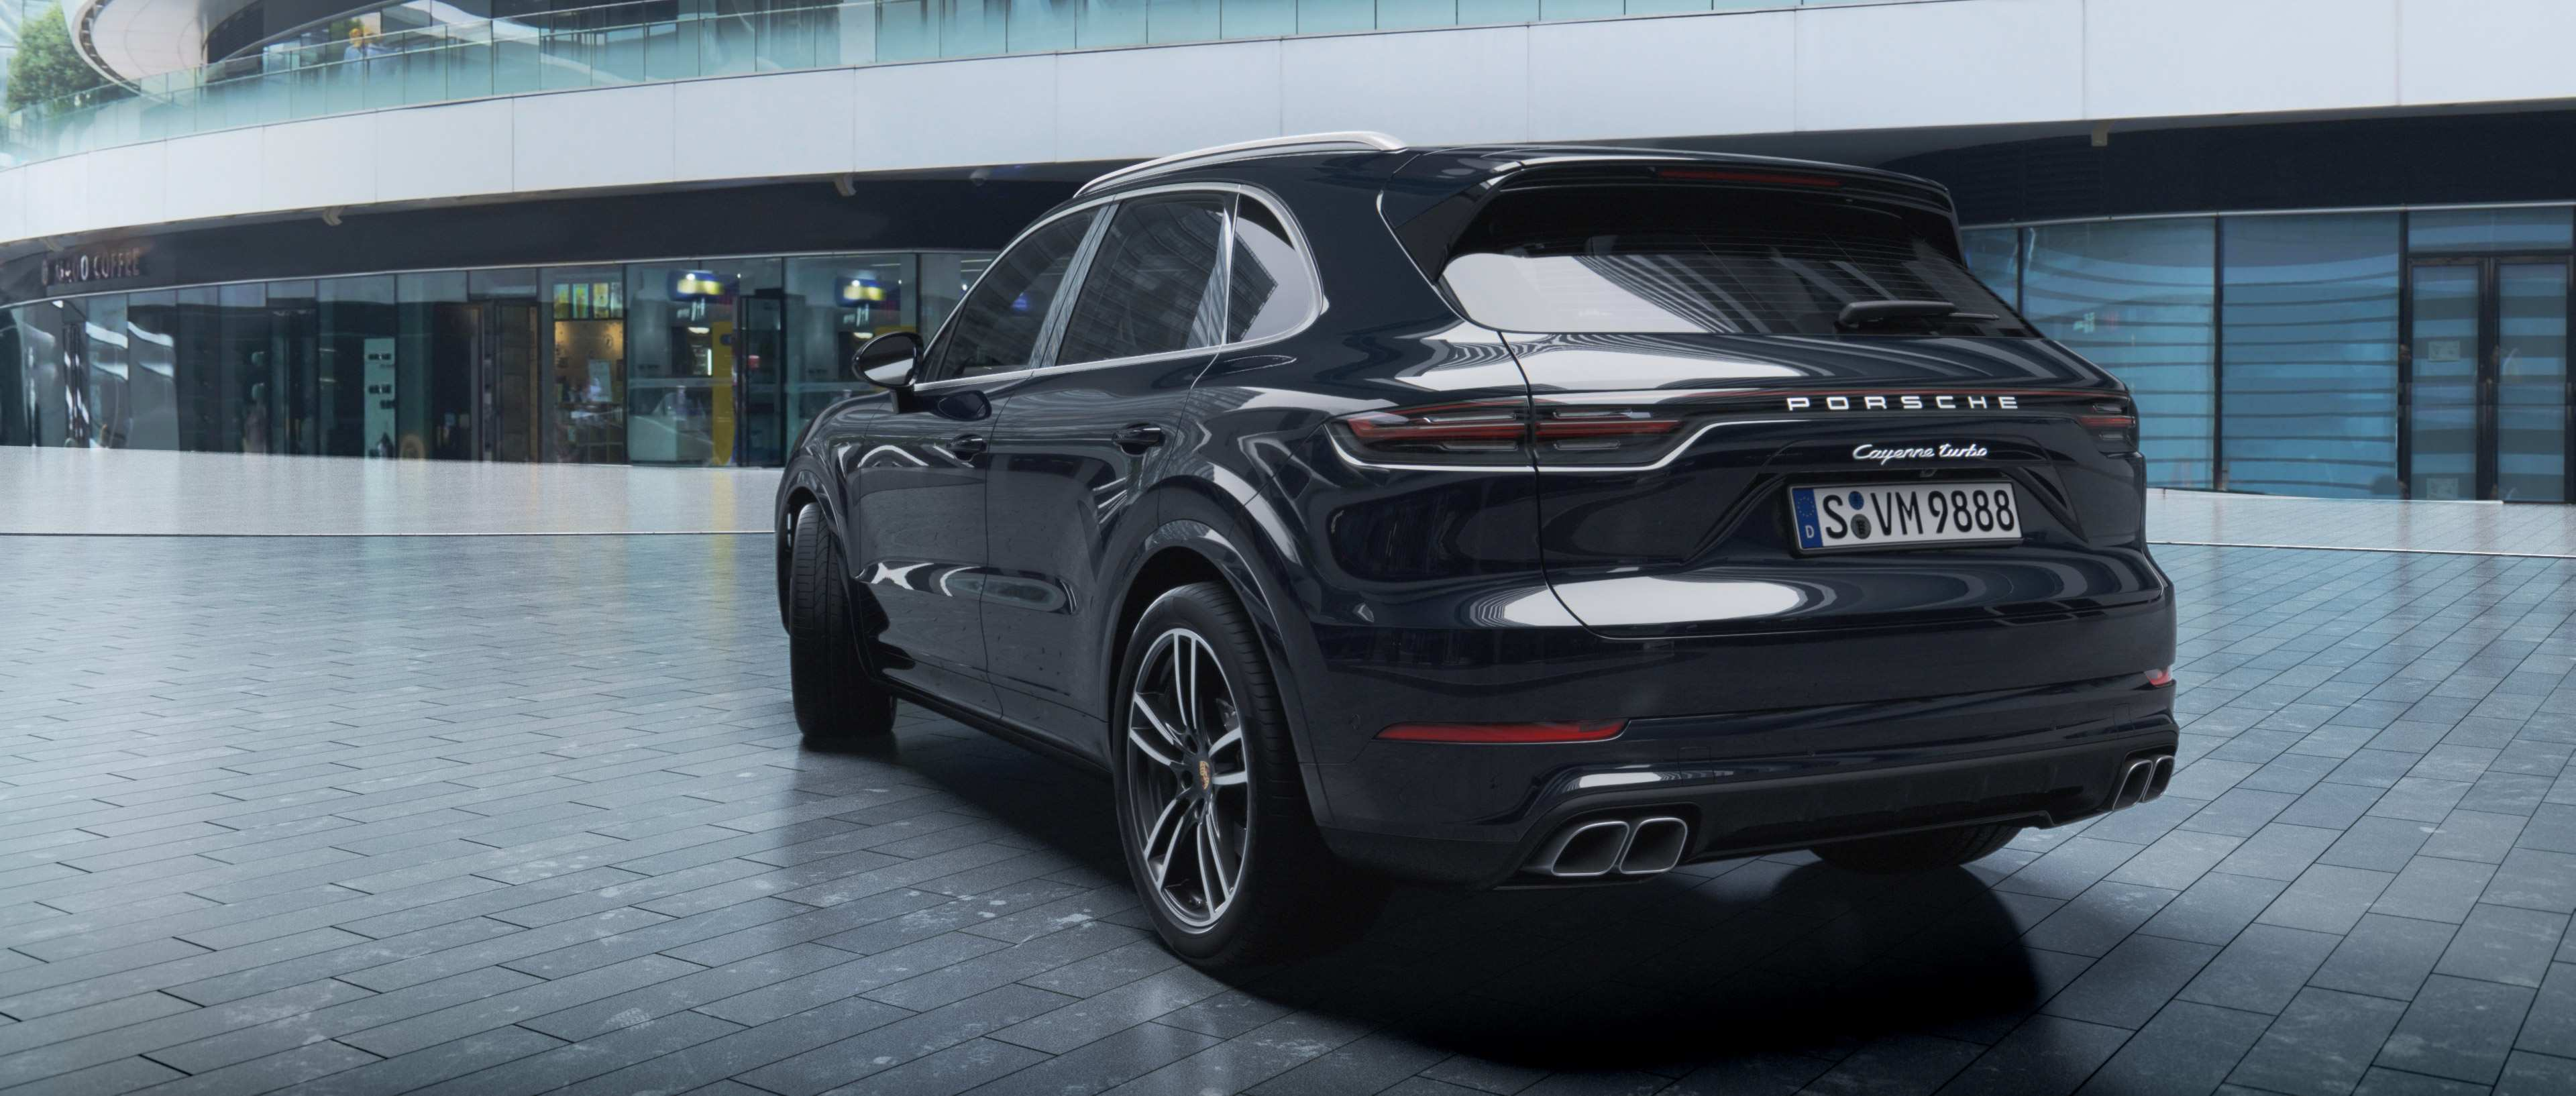 81 All New 2019 Porsche Cayenne Standard Features Release Date And Concept